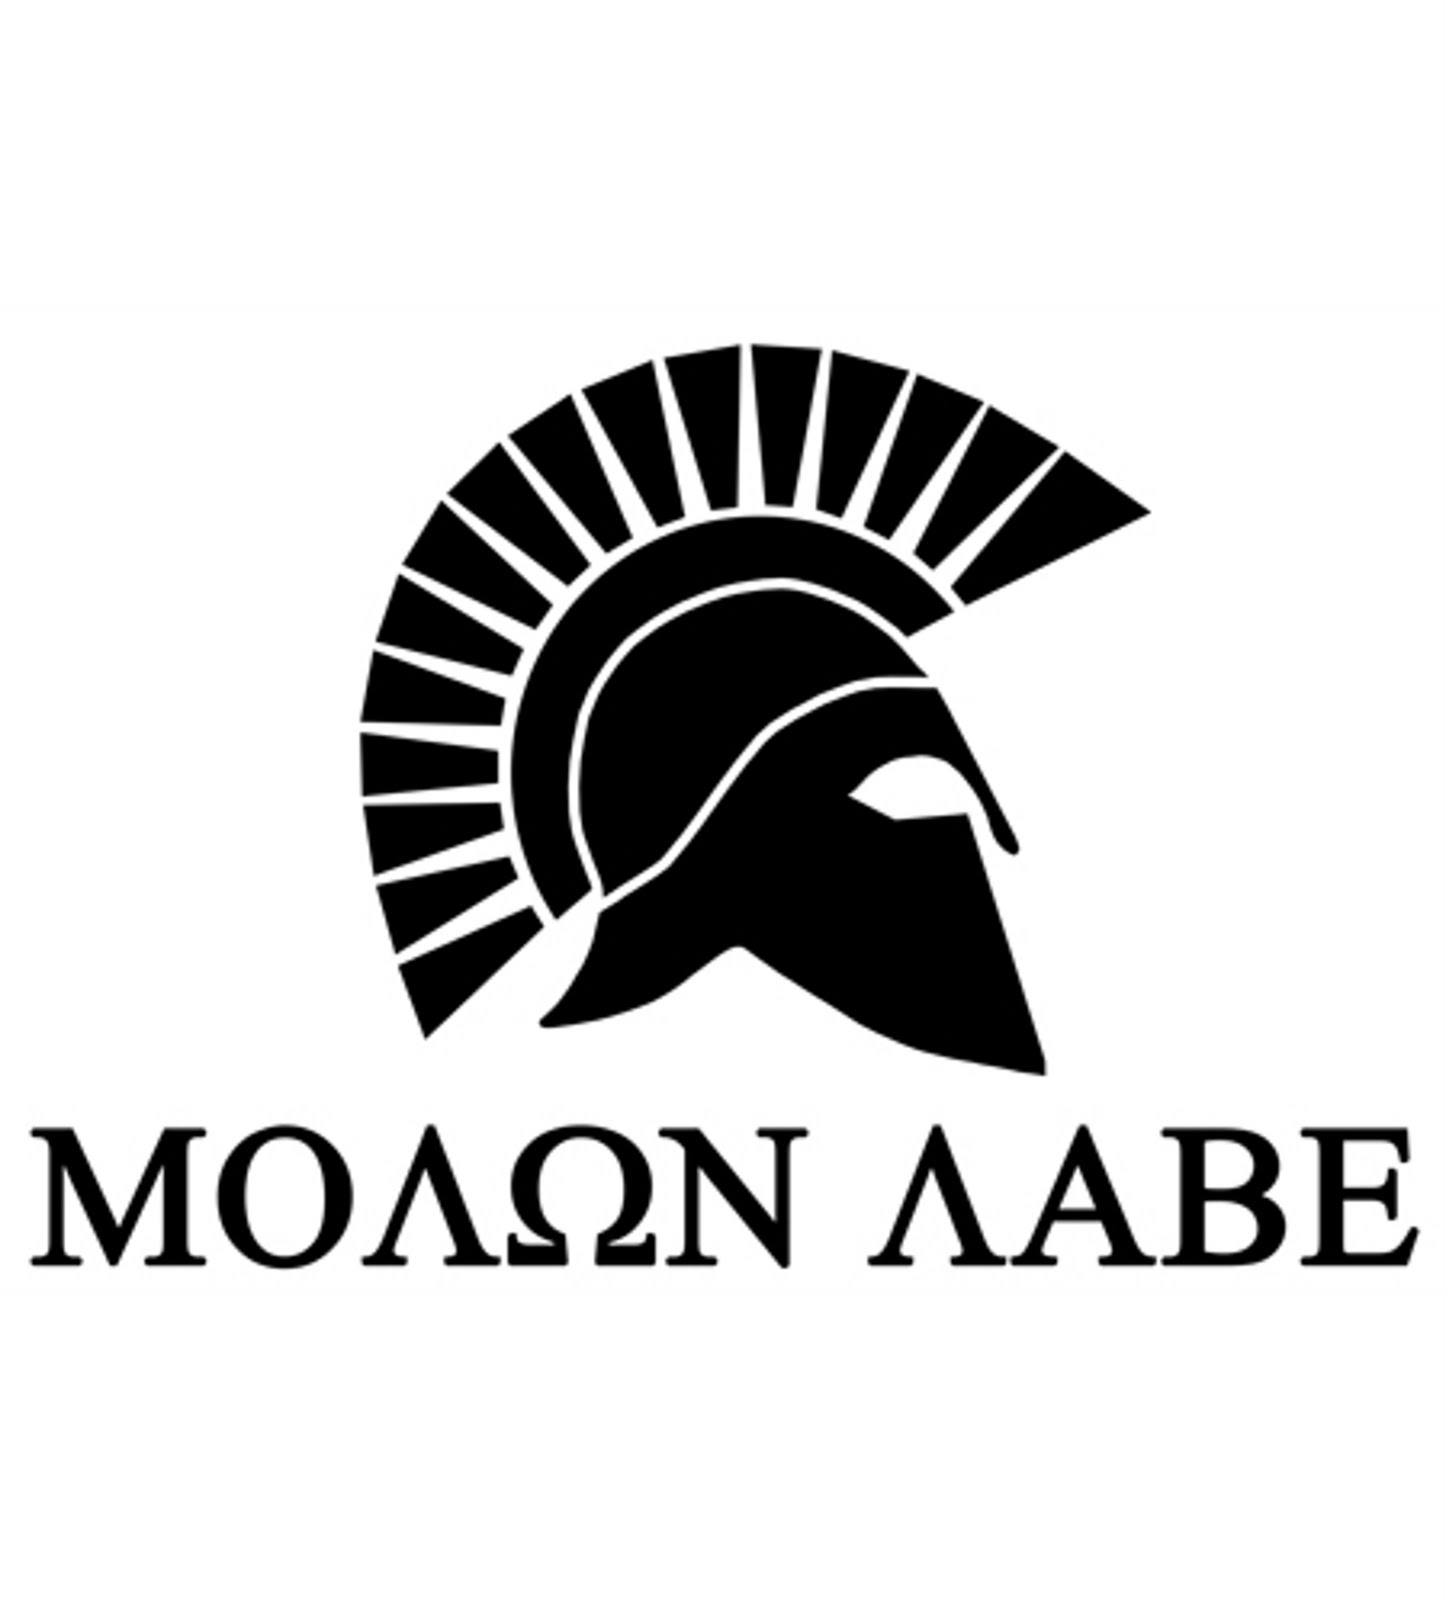 Molon Labe greek letters below spartan helmet